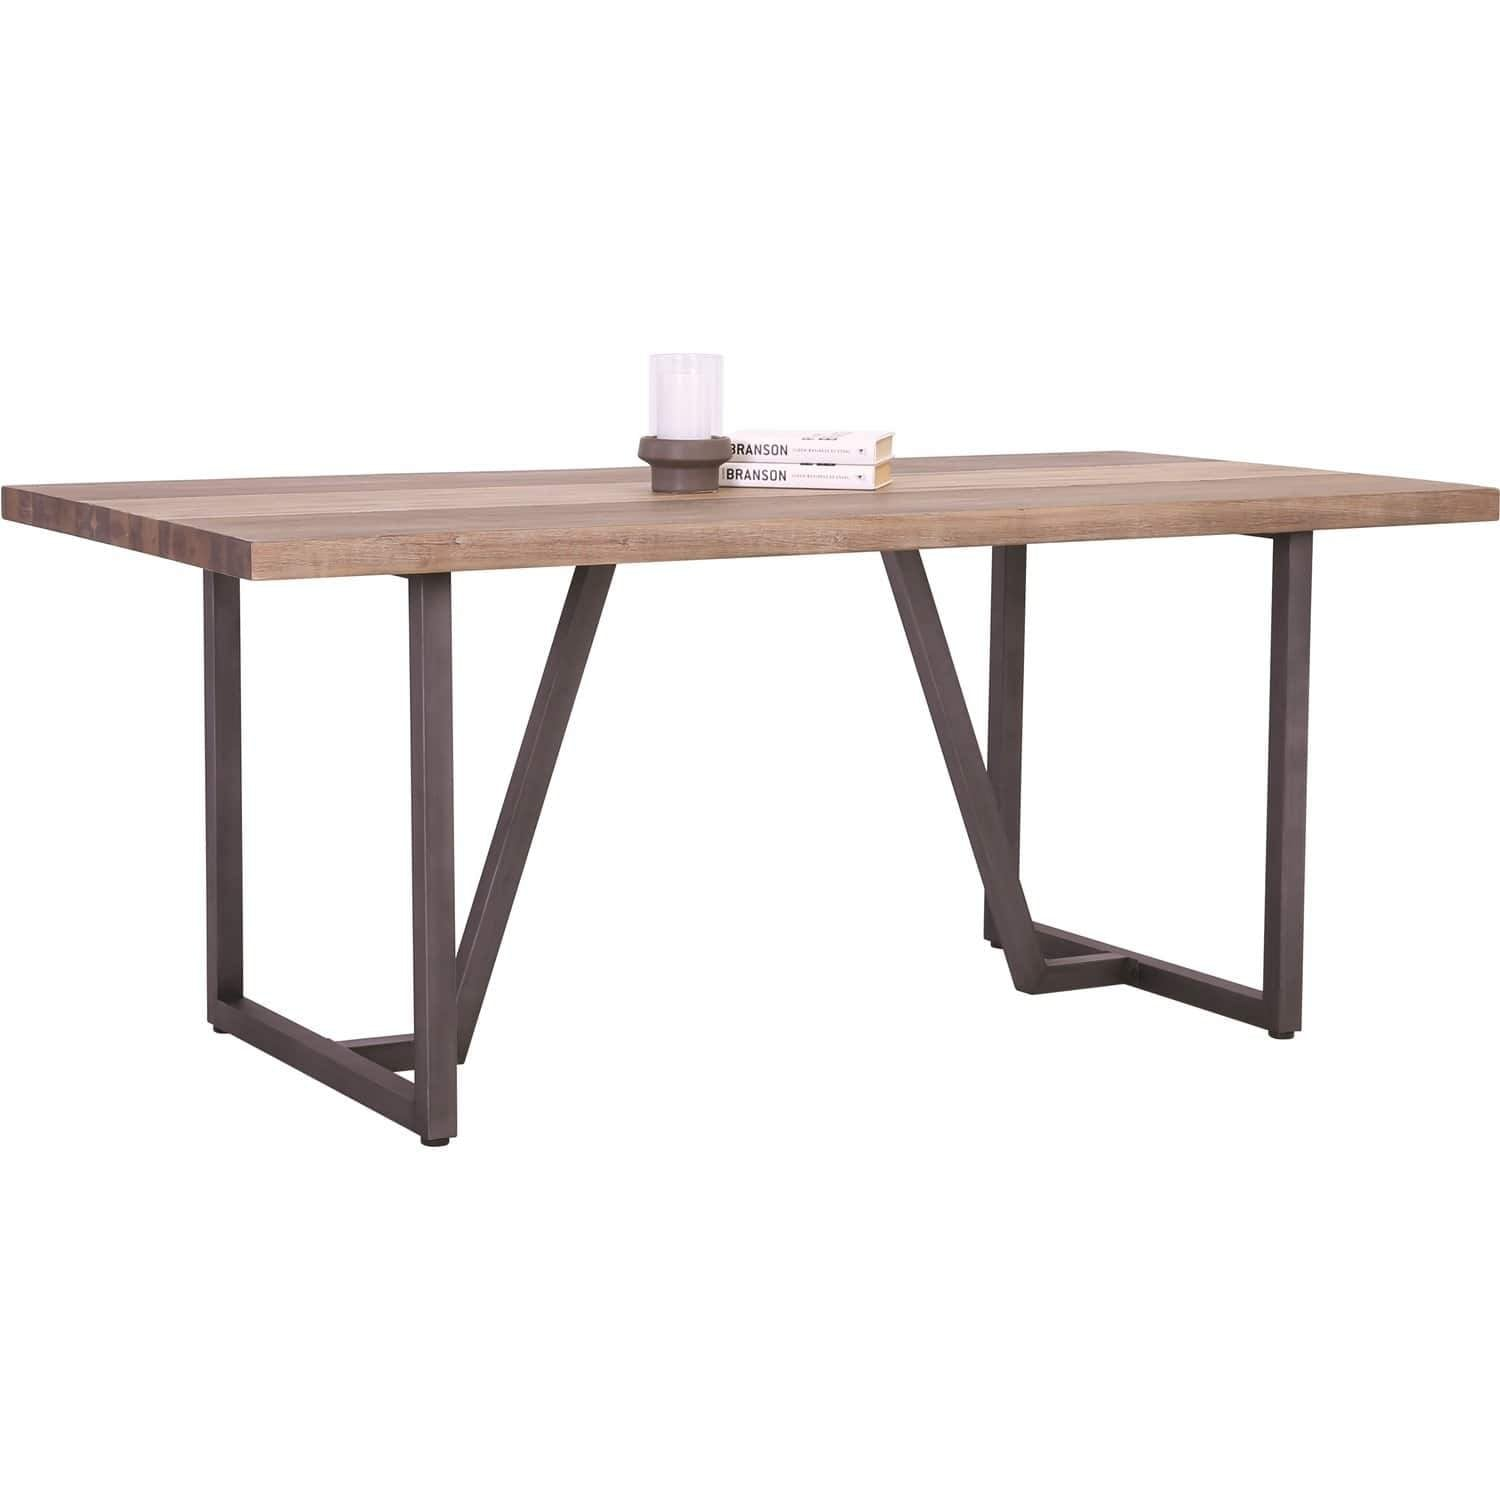 mfdesign88 Dachi Dining Table With Grey Anthracite Grey